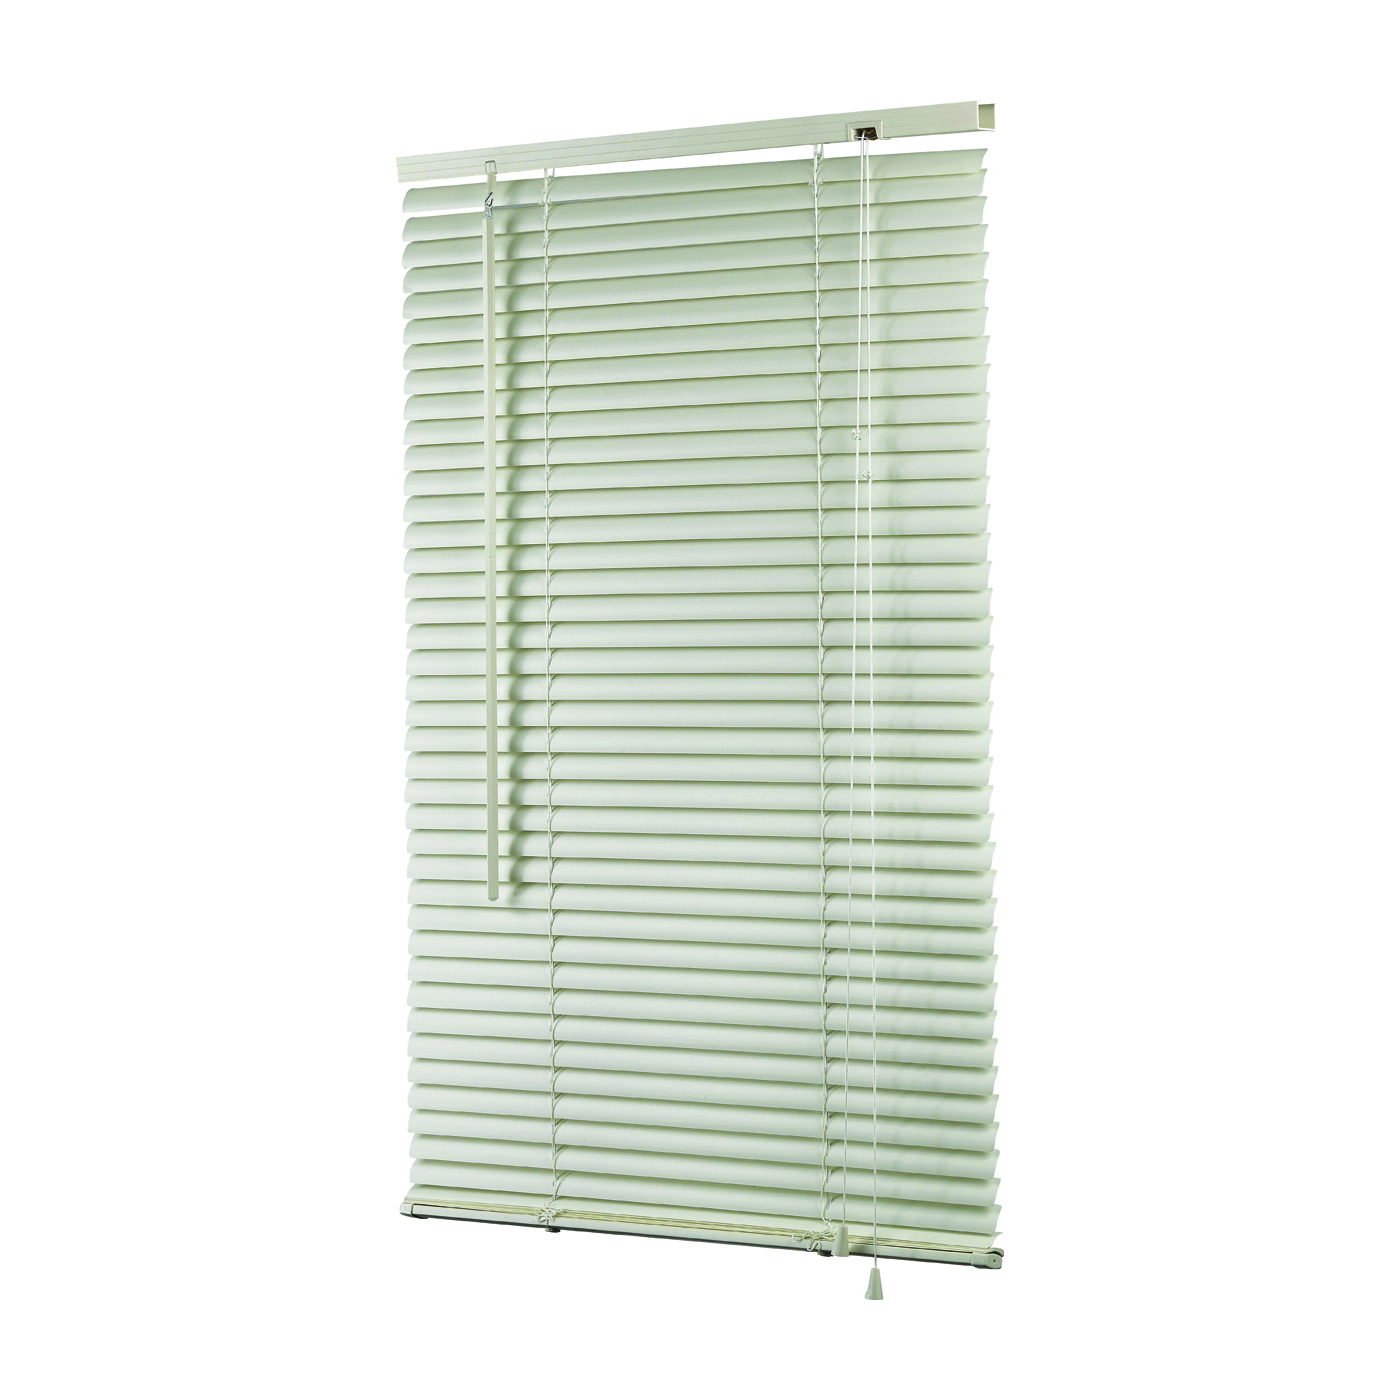 Picture of Simple Spaces MBV-35X64-A3L Mini-Blinds, 64 in L, 35 in W, Vinyl, Alabaster